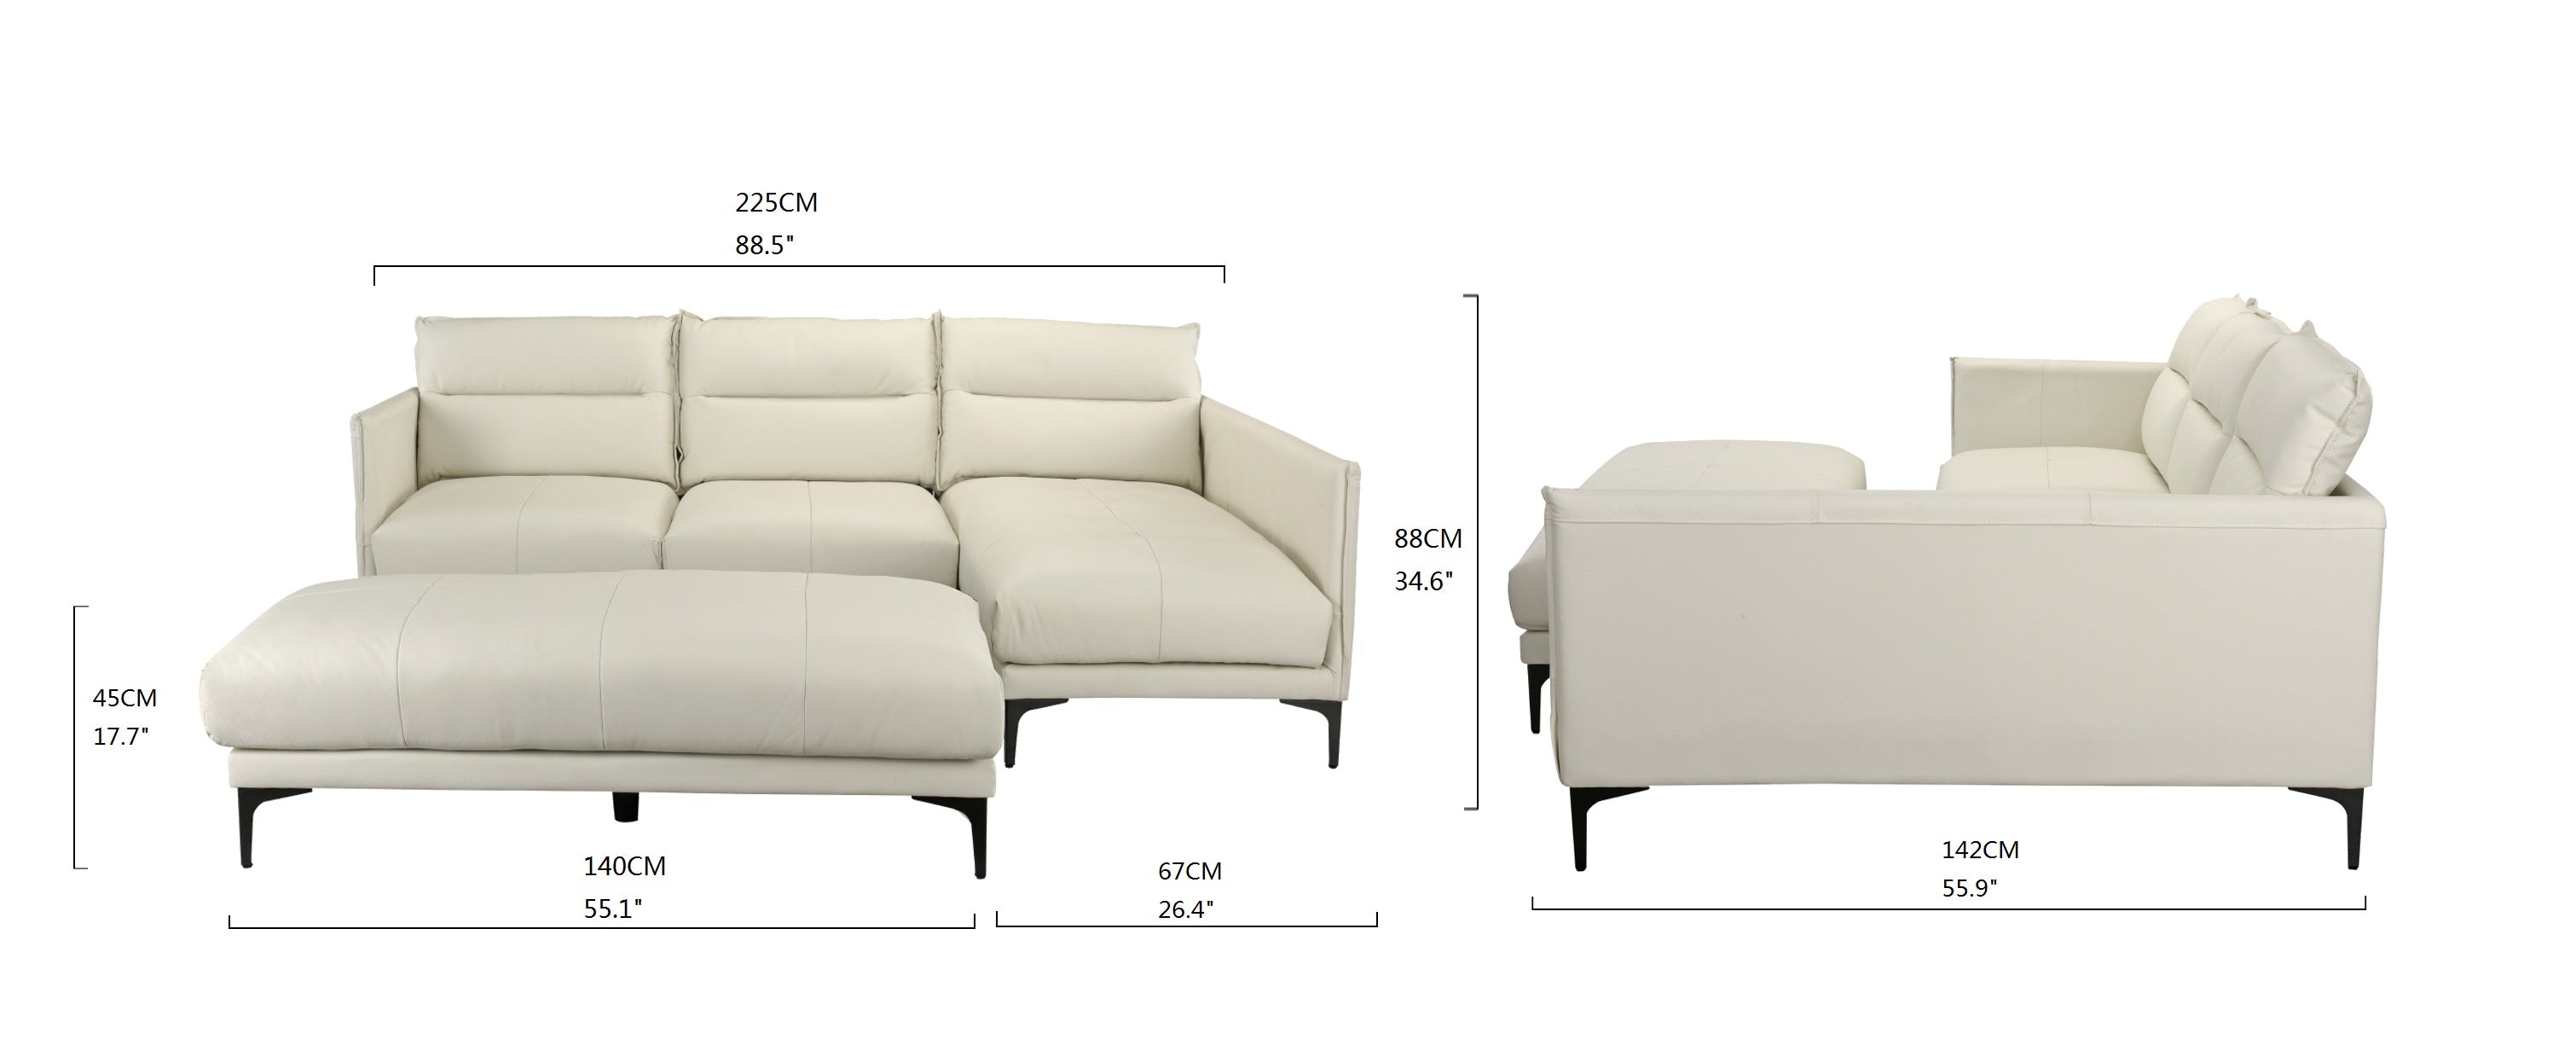 Brilliant Tony New Wave Leather Match Sectional With Ottoman Machost Co Dining Chair Design Ideas Machostcouk